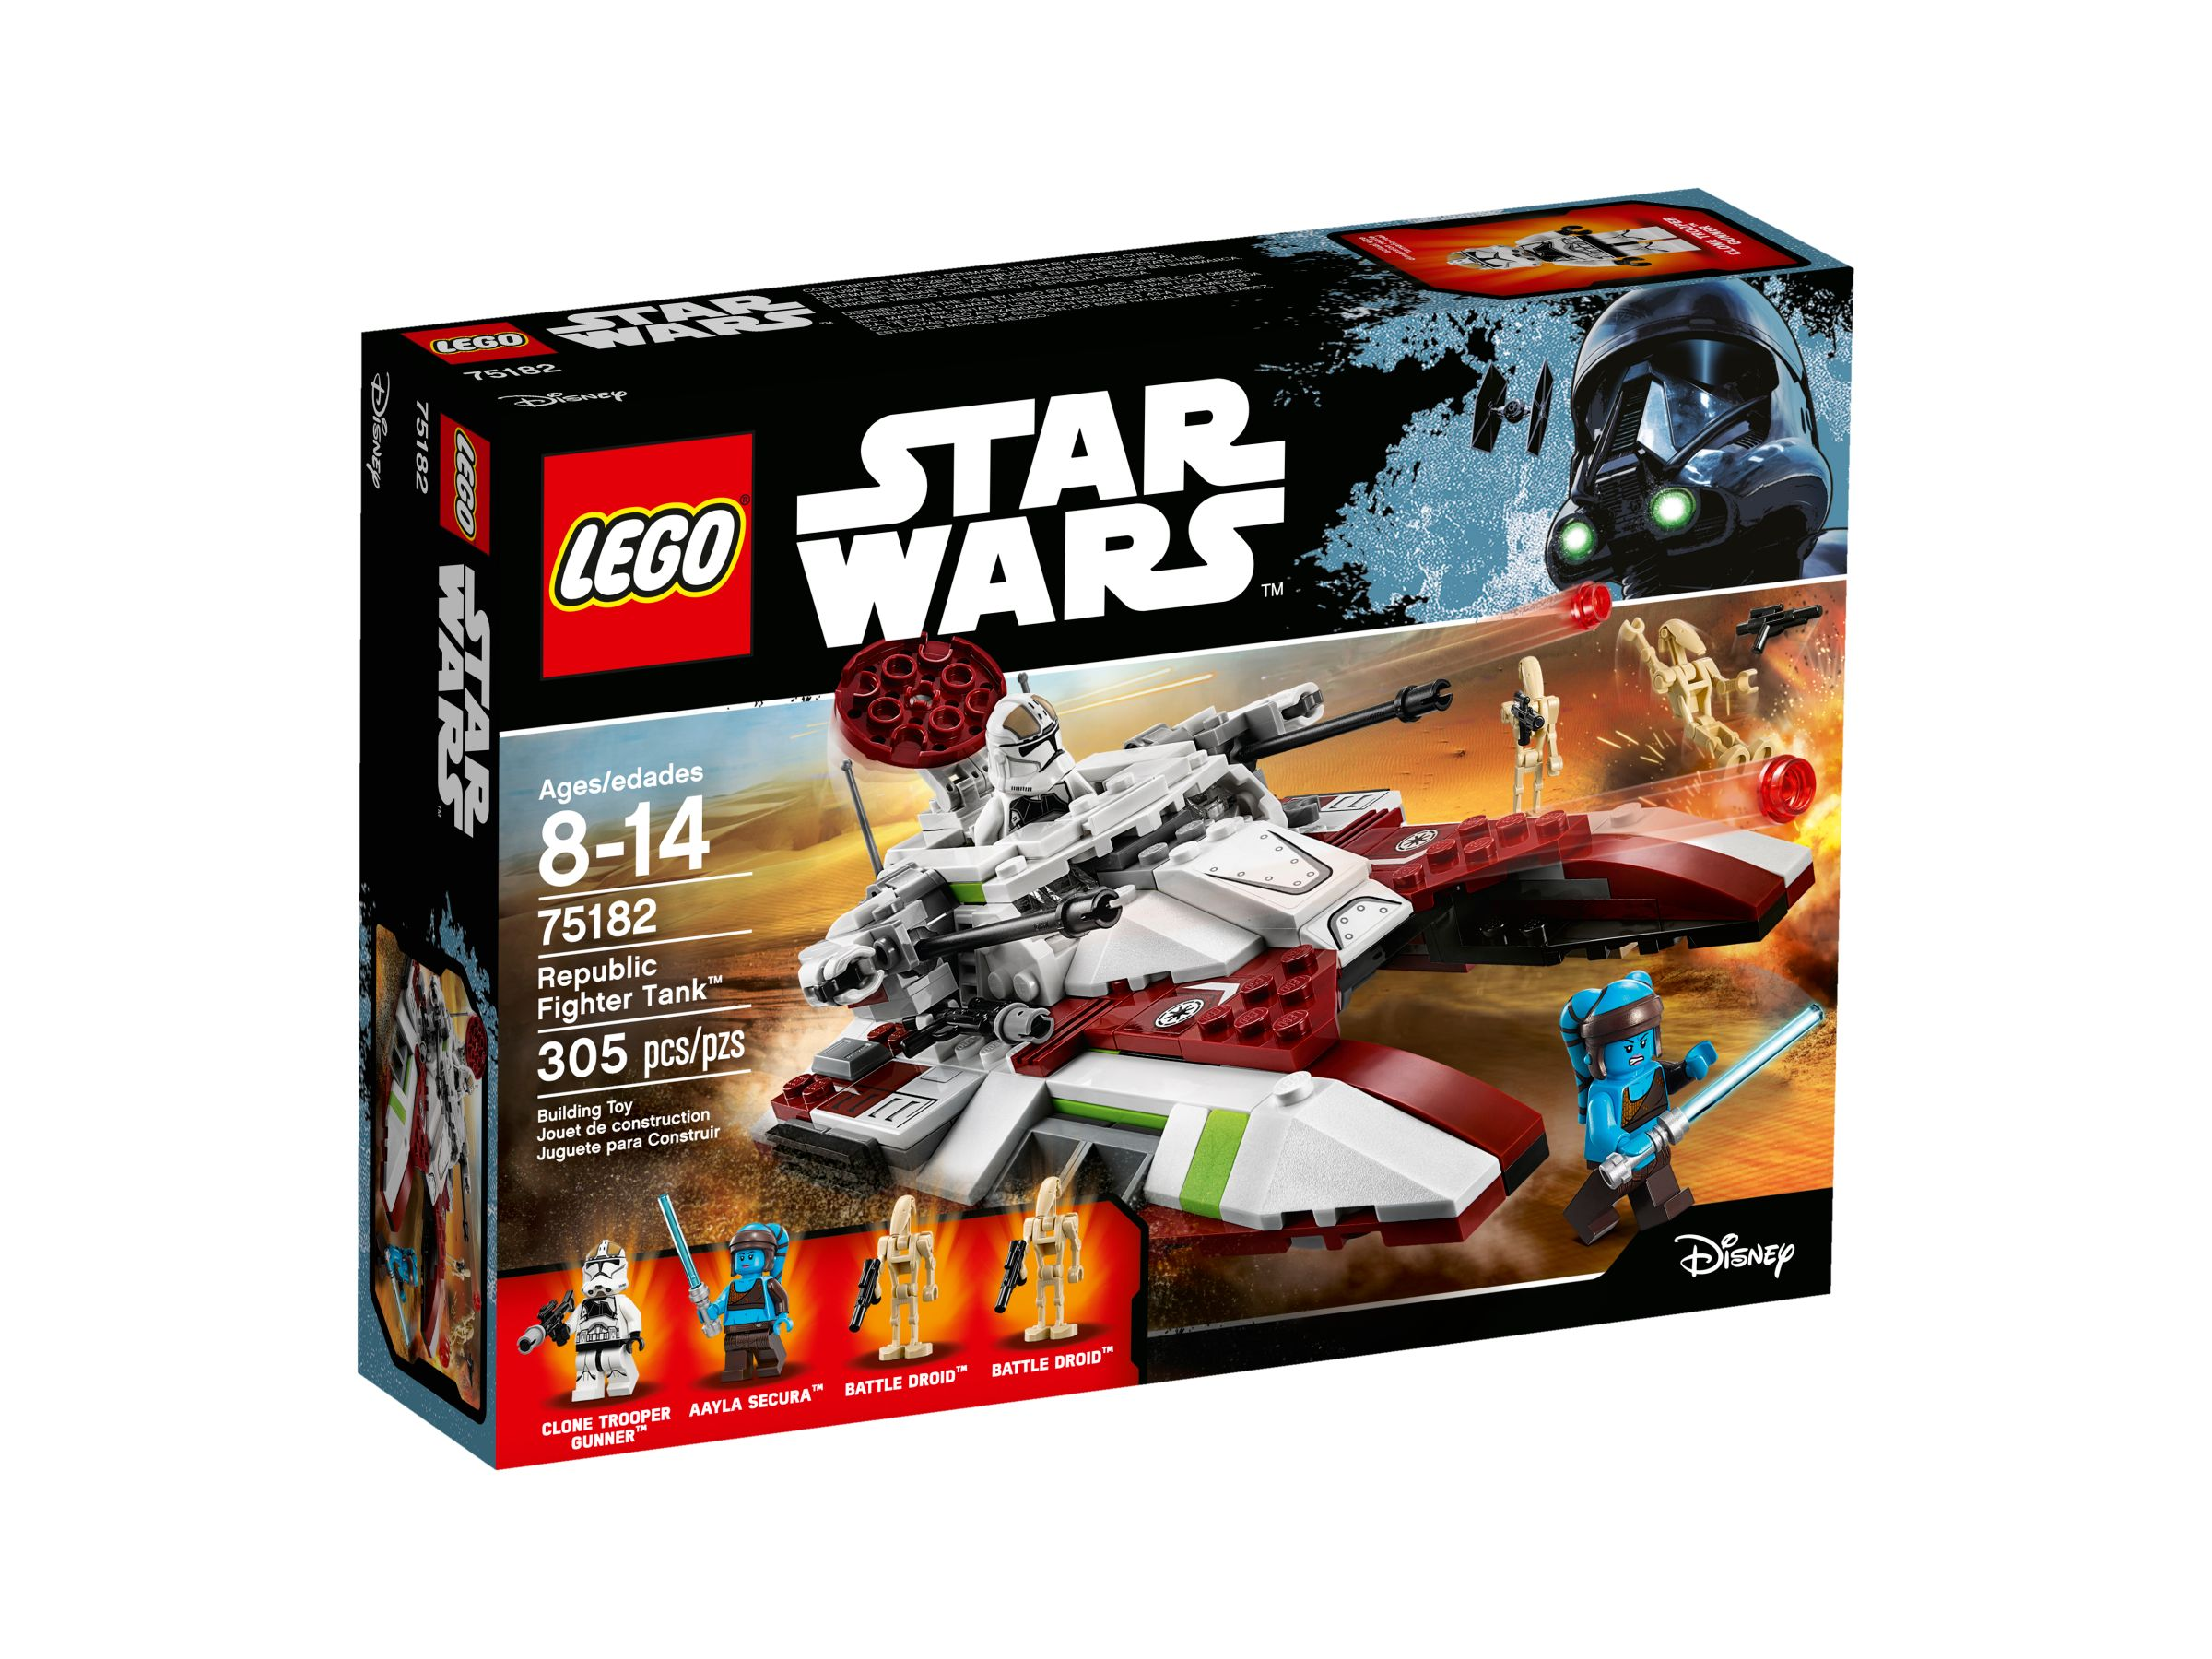 LEGO Star Wars 75182 Republic Fighter Tank™ LEGO_75182_alt1.jpg